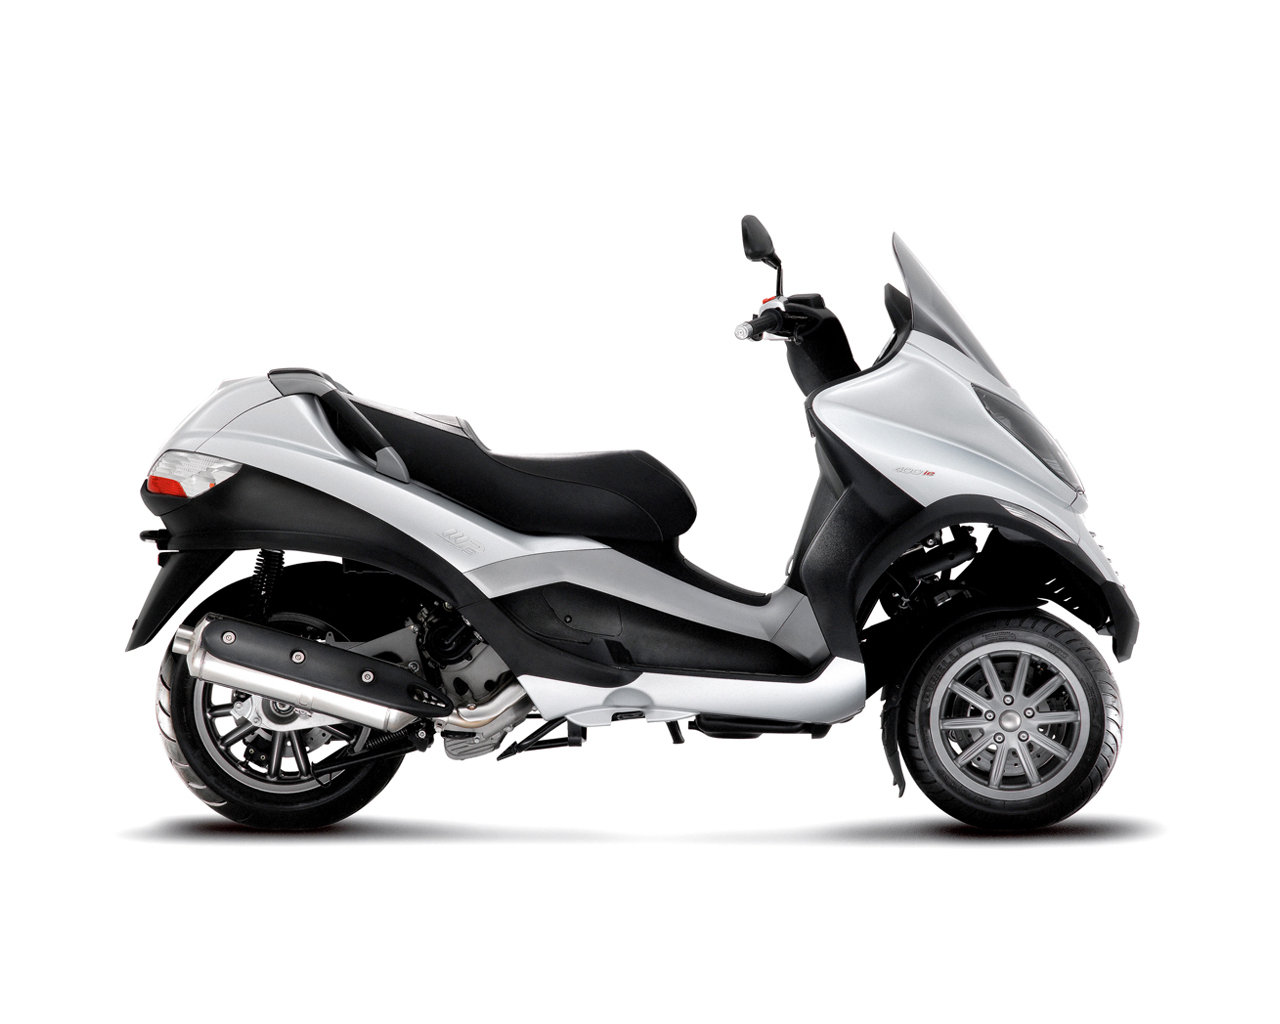 2012 piaggio mp3 400 picture 444008 motorcycle review top speed. Black Bedroom Furniture Sets. Home Design Ideas